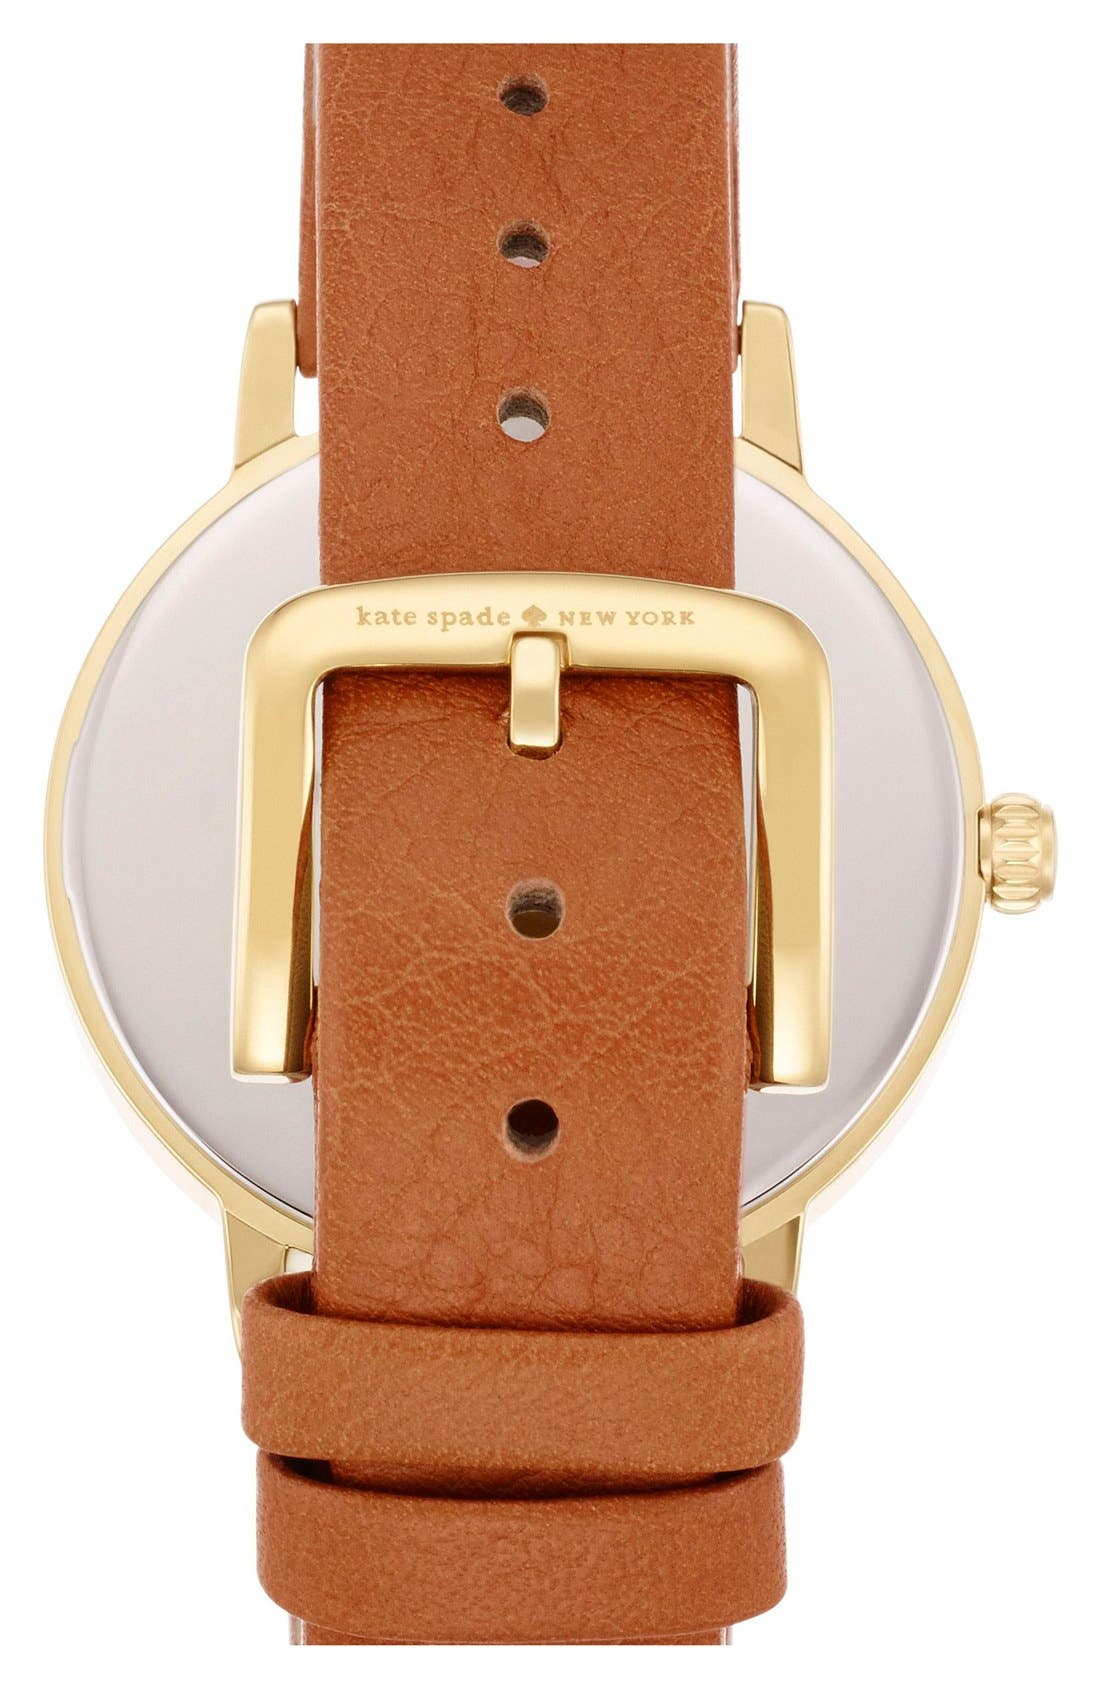 KATE SPADE NEW YORK,                             'metro' scalloped dial leather strap watch, 34mm,                             Alternate thumbnail 2, color,                             200